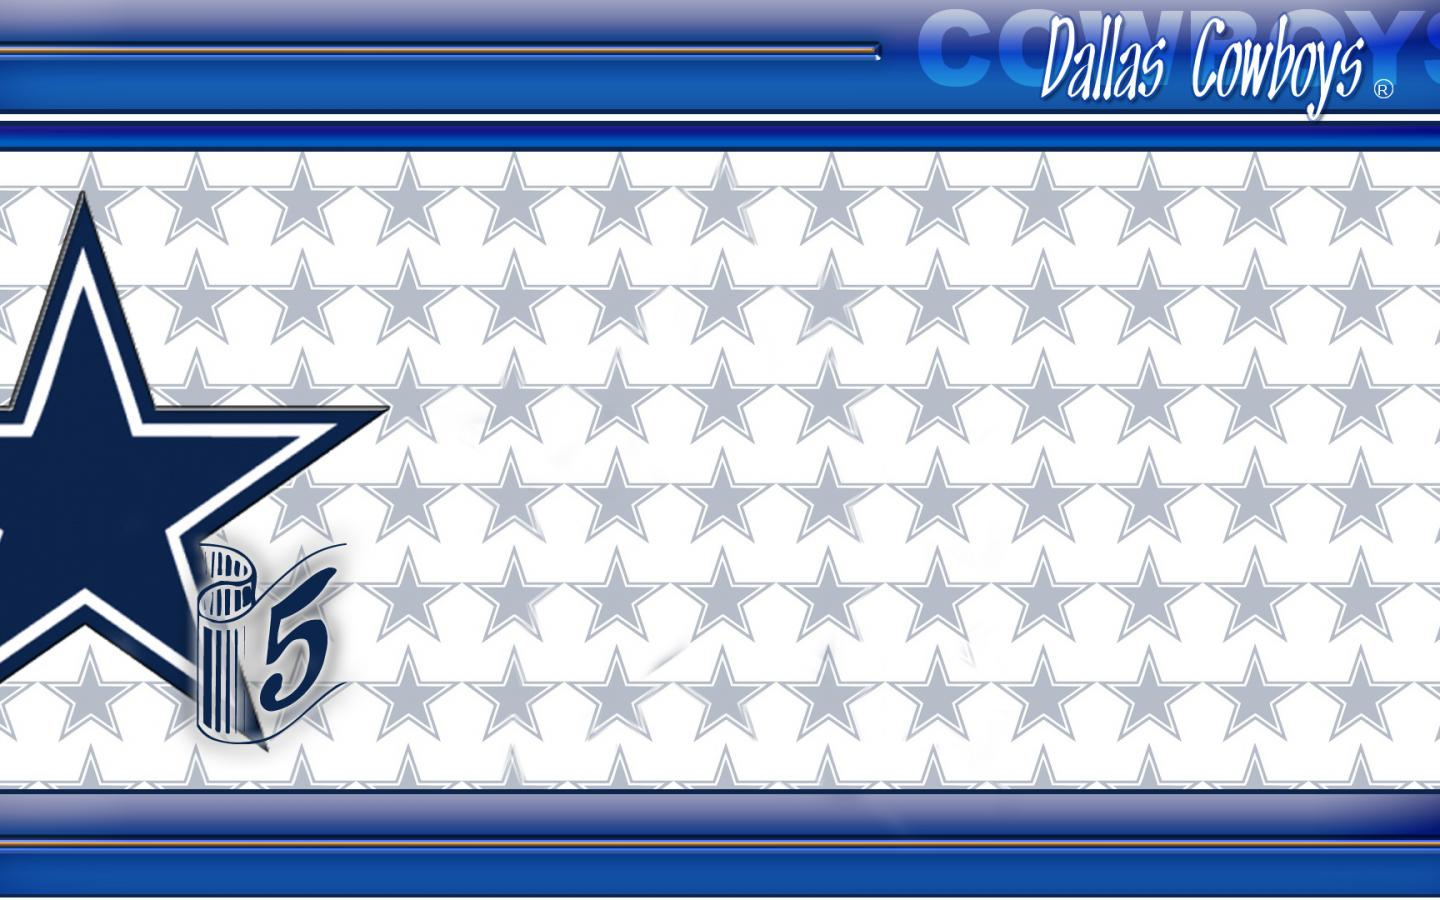 dallas cowboys wallpaper border 02 of 10 with stars as